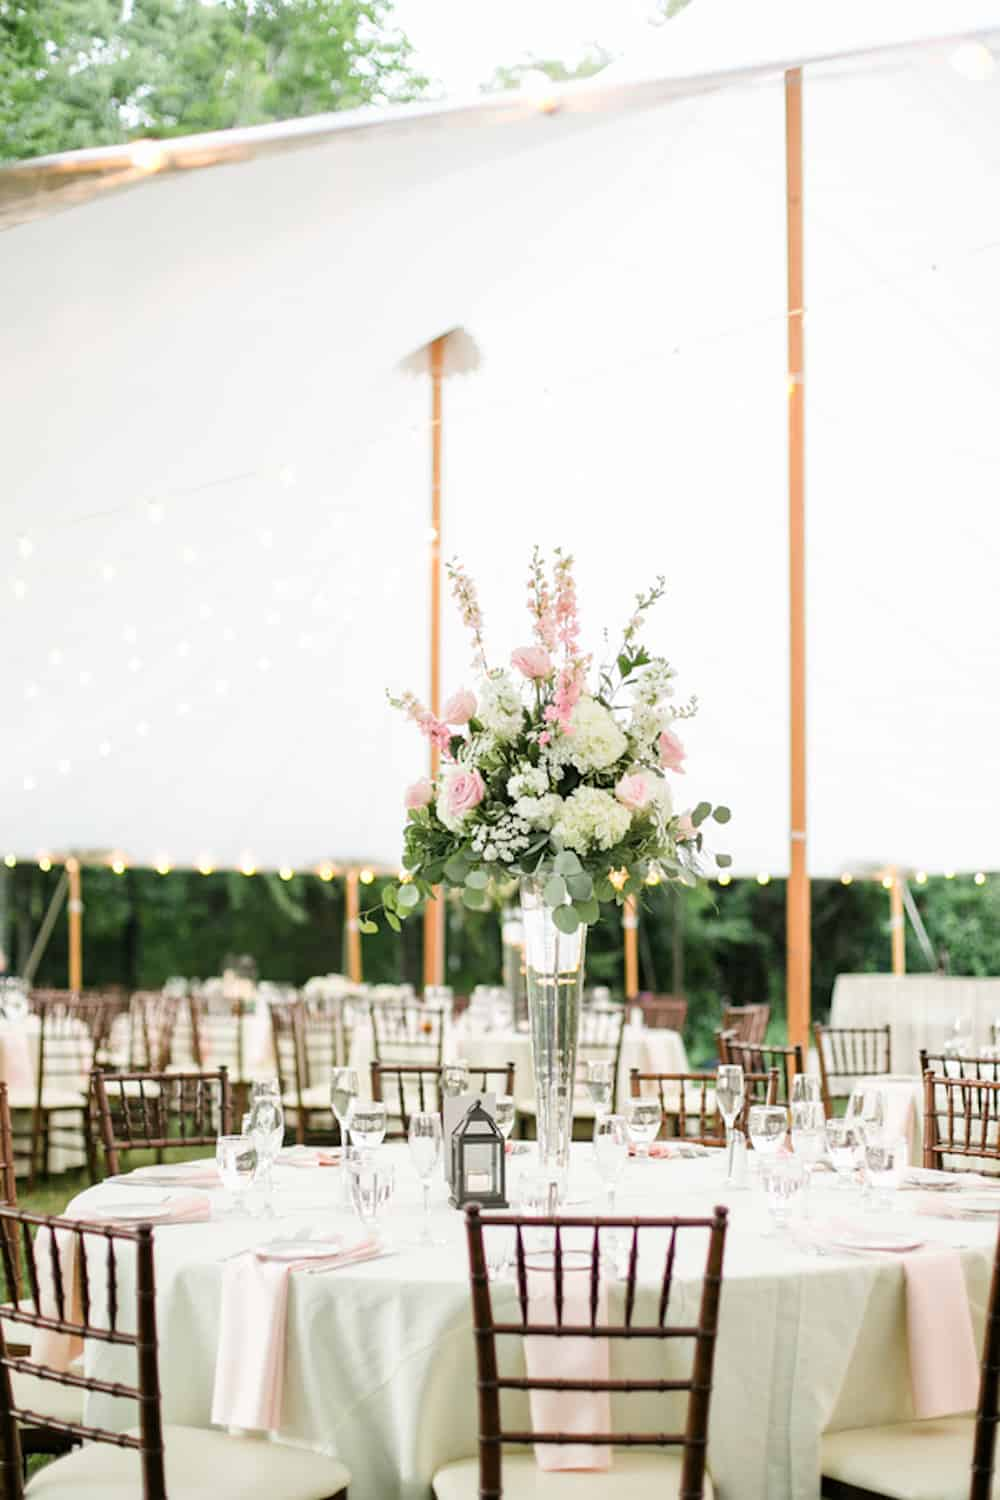 9 Strickland_Fotino_DeborahZoePhotography_backyardweddingdeborahzoe0079_low